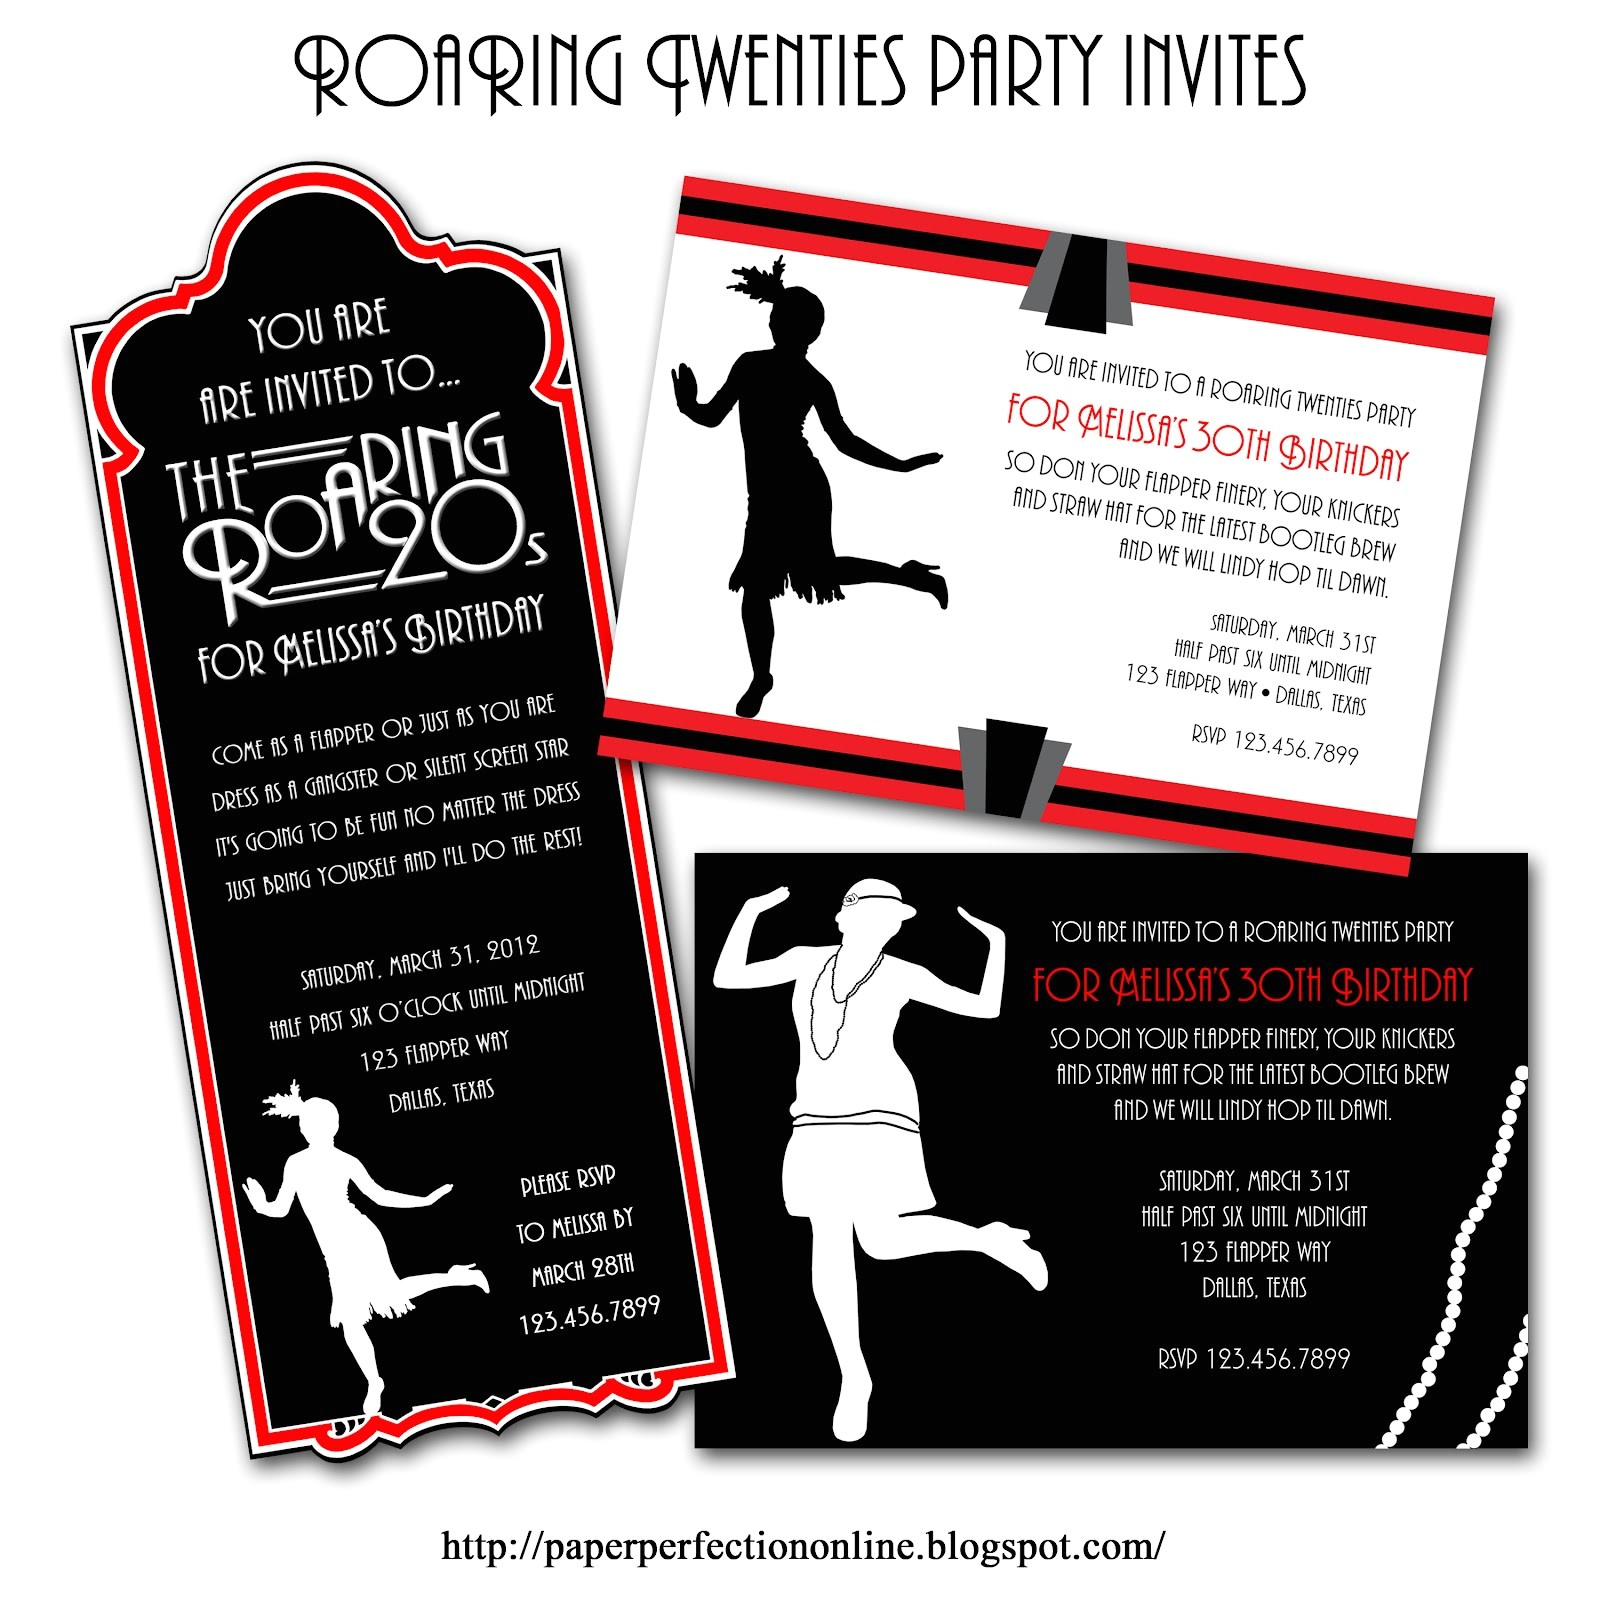 roaring twenties party invitations